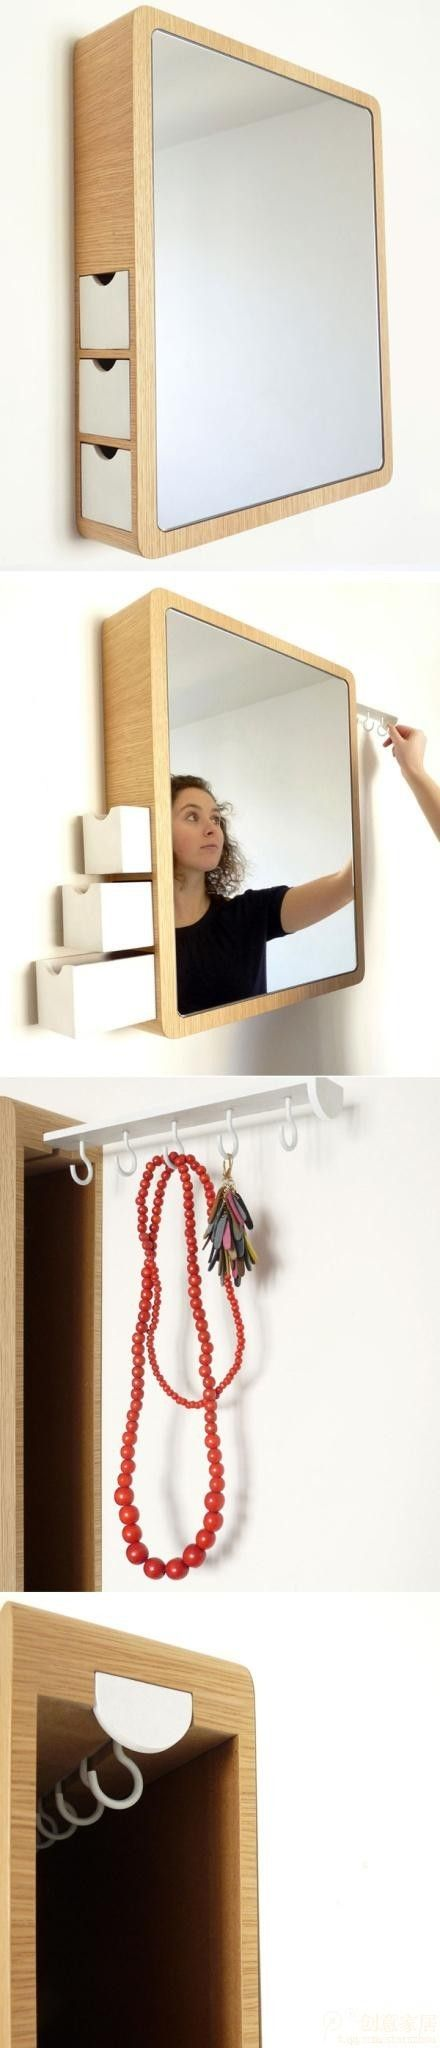 Fucking awesome. Design by Les M studio, this elegant makeup mirror comes with hidden hanger and sliding storage box, ideal for small apartment: Hidden Storage, Makeup Mirror, Jewelry Storage, Storage Mirror, Storage Boxes, Small Apartment, Bathroom Mirror, Clever Makeup, Hidden Hangers